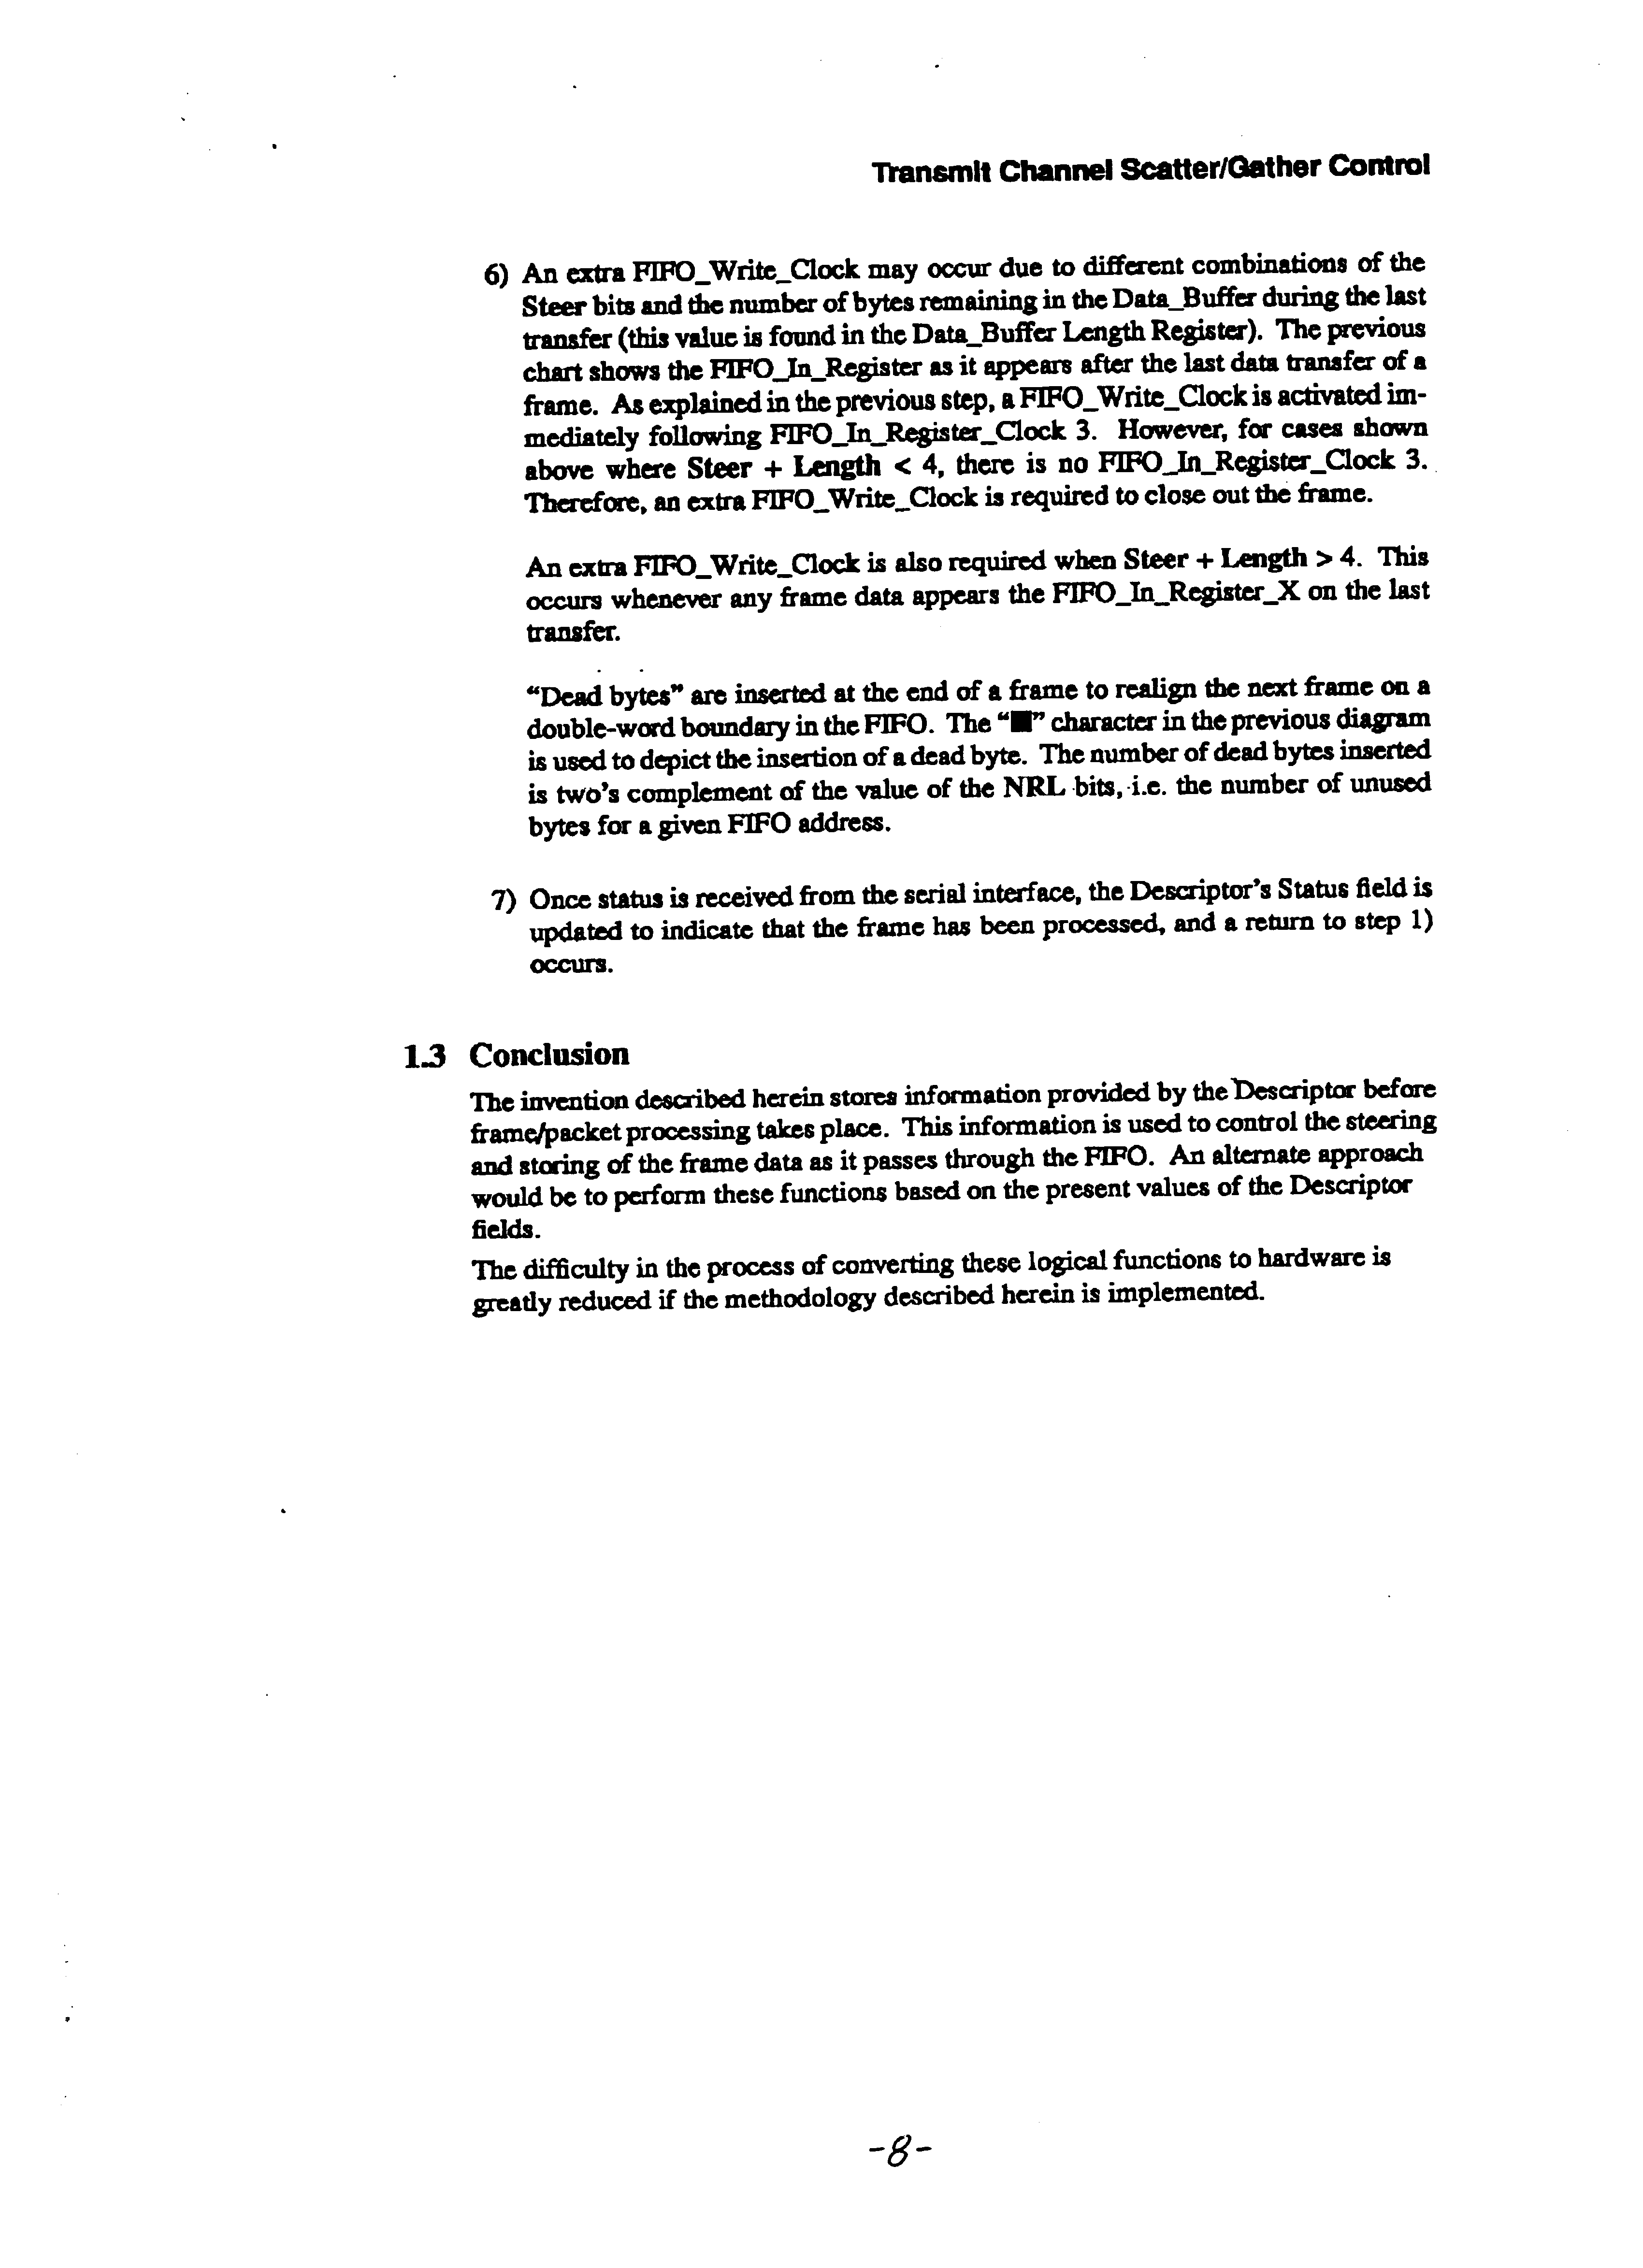 US6185633B1 - DMA configurable receive channel with memory width N